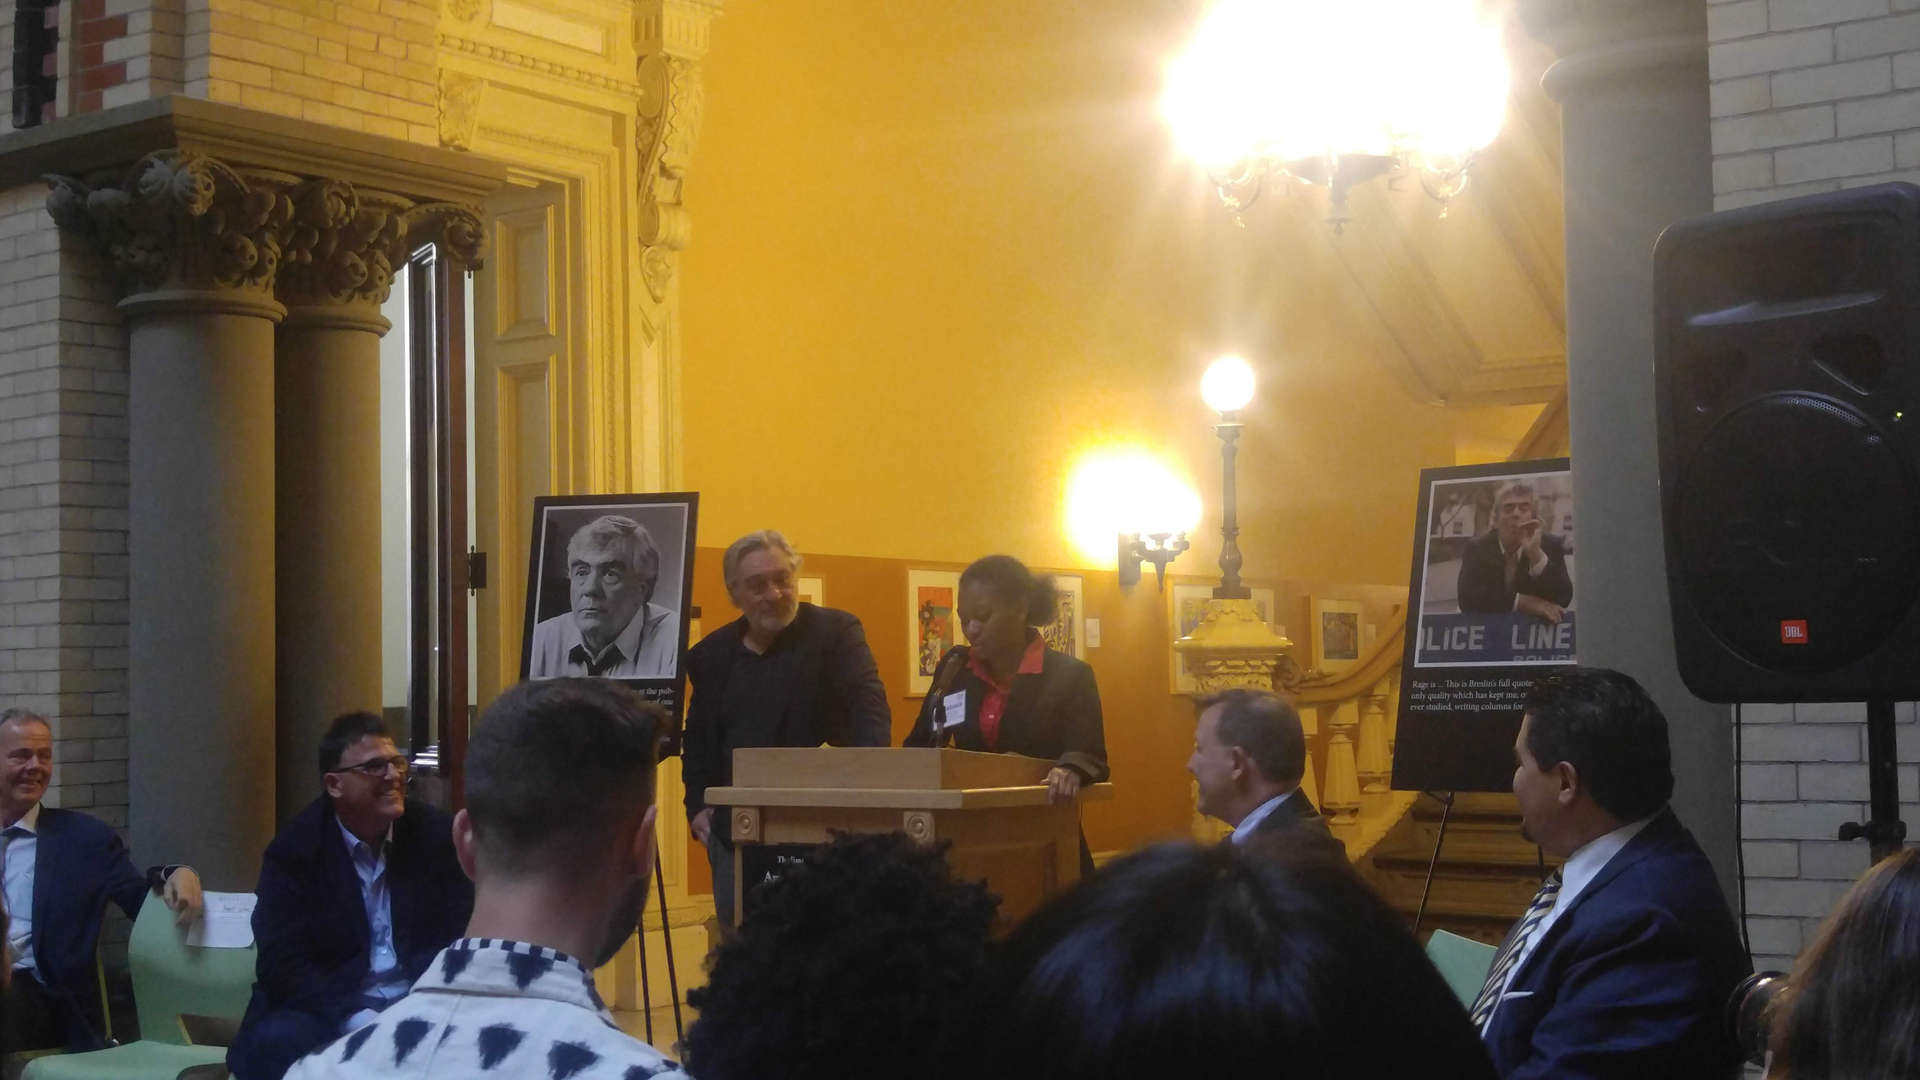 Senior Prestasia Aldridge speaking at a podium at the DOE's Tweed headquarters with Robert De Niro standing next to her